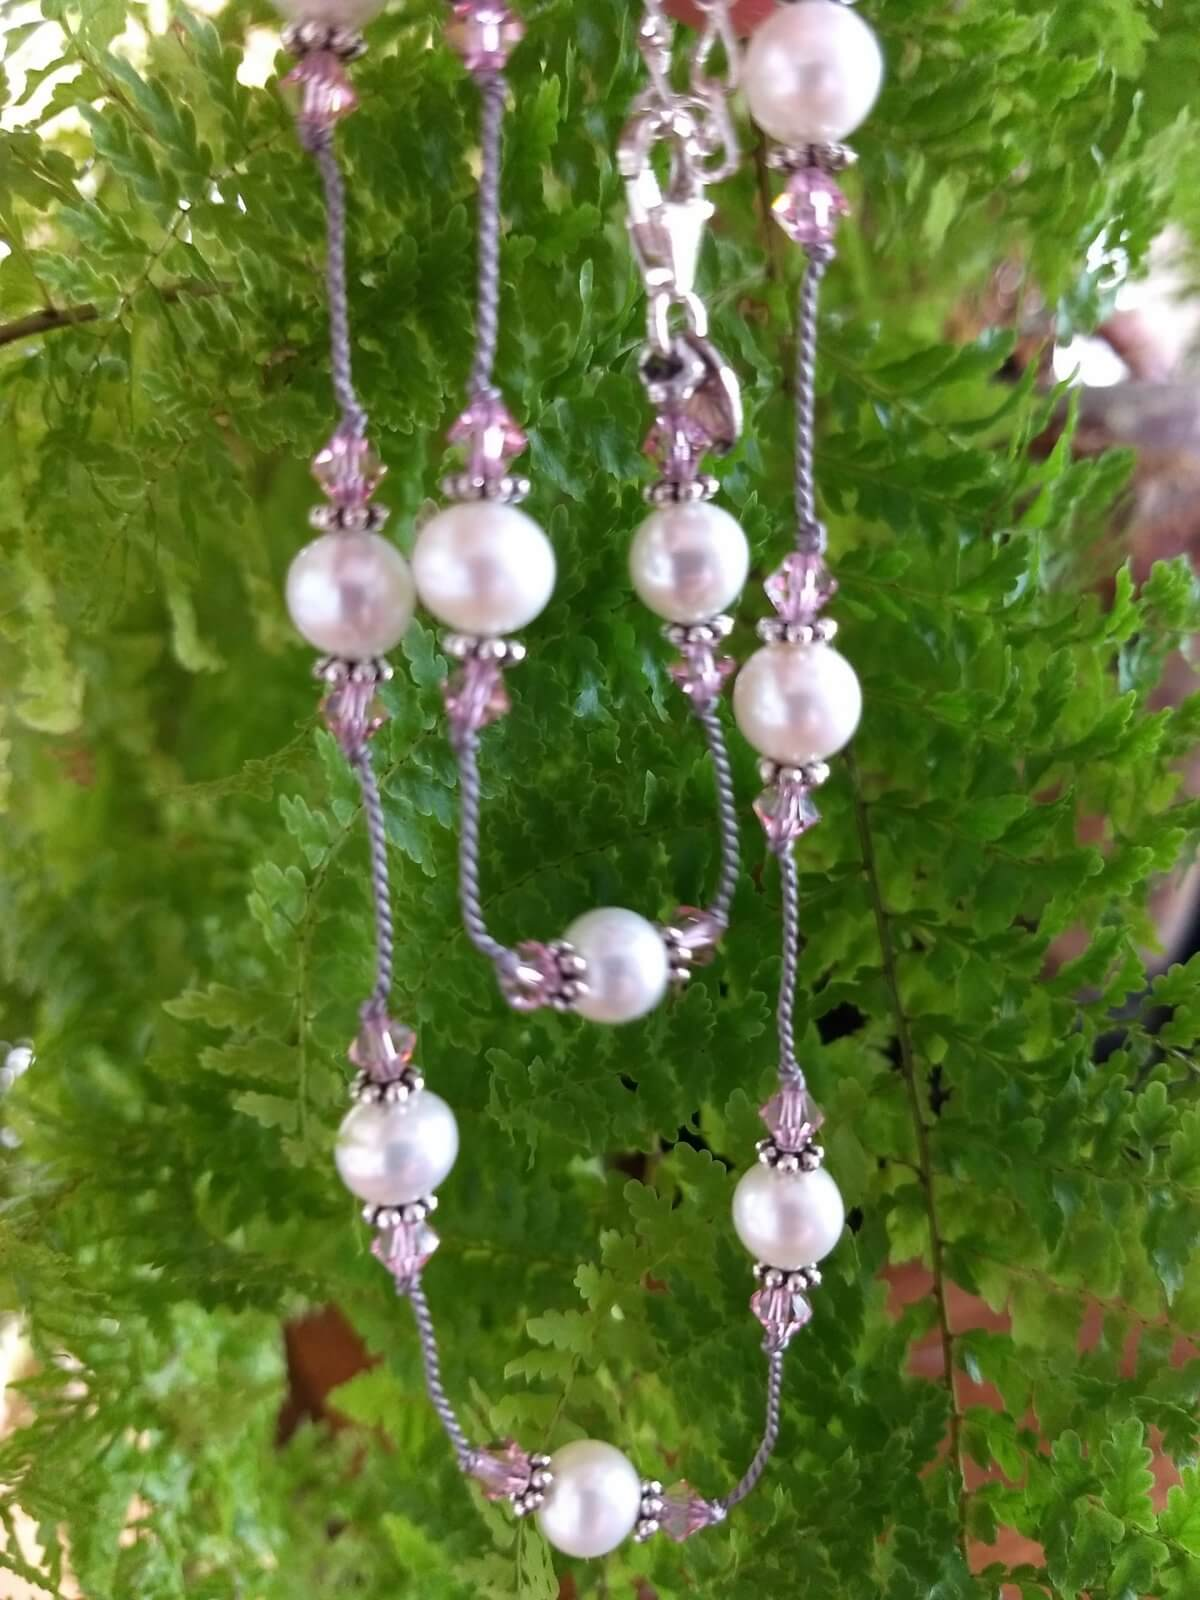 https://lorirae.com/wp-content/uploads/2020/05/pearls-with-rose-crystals-1-scaled-e1589331087102.jpg